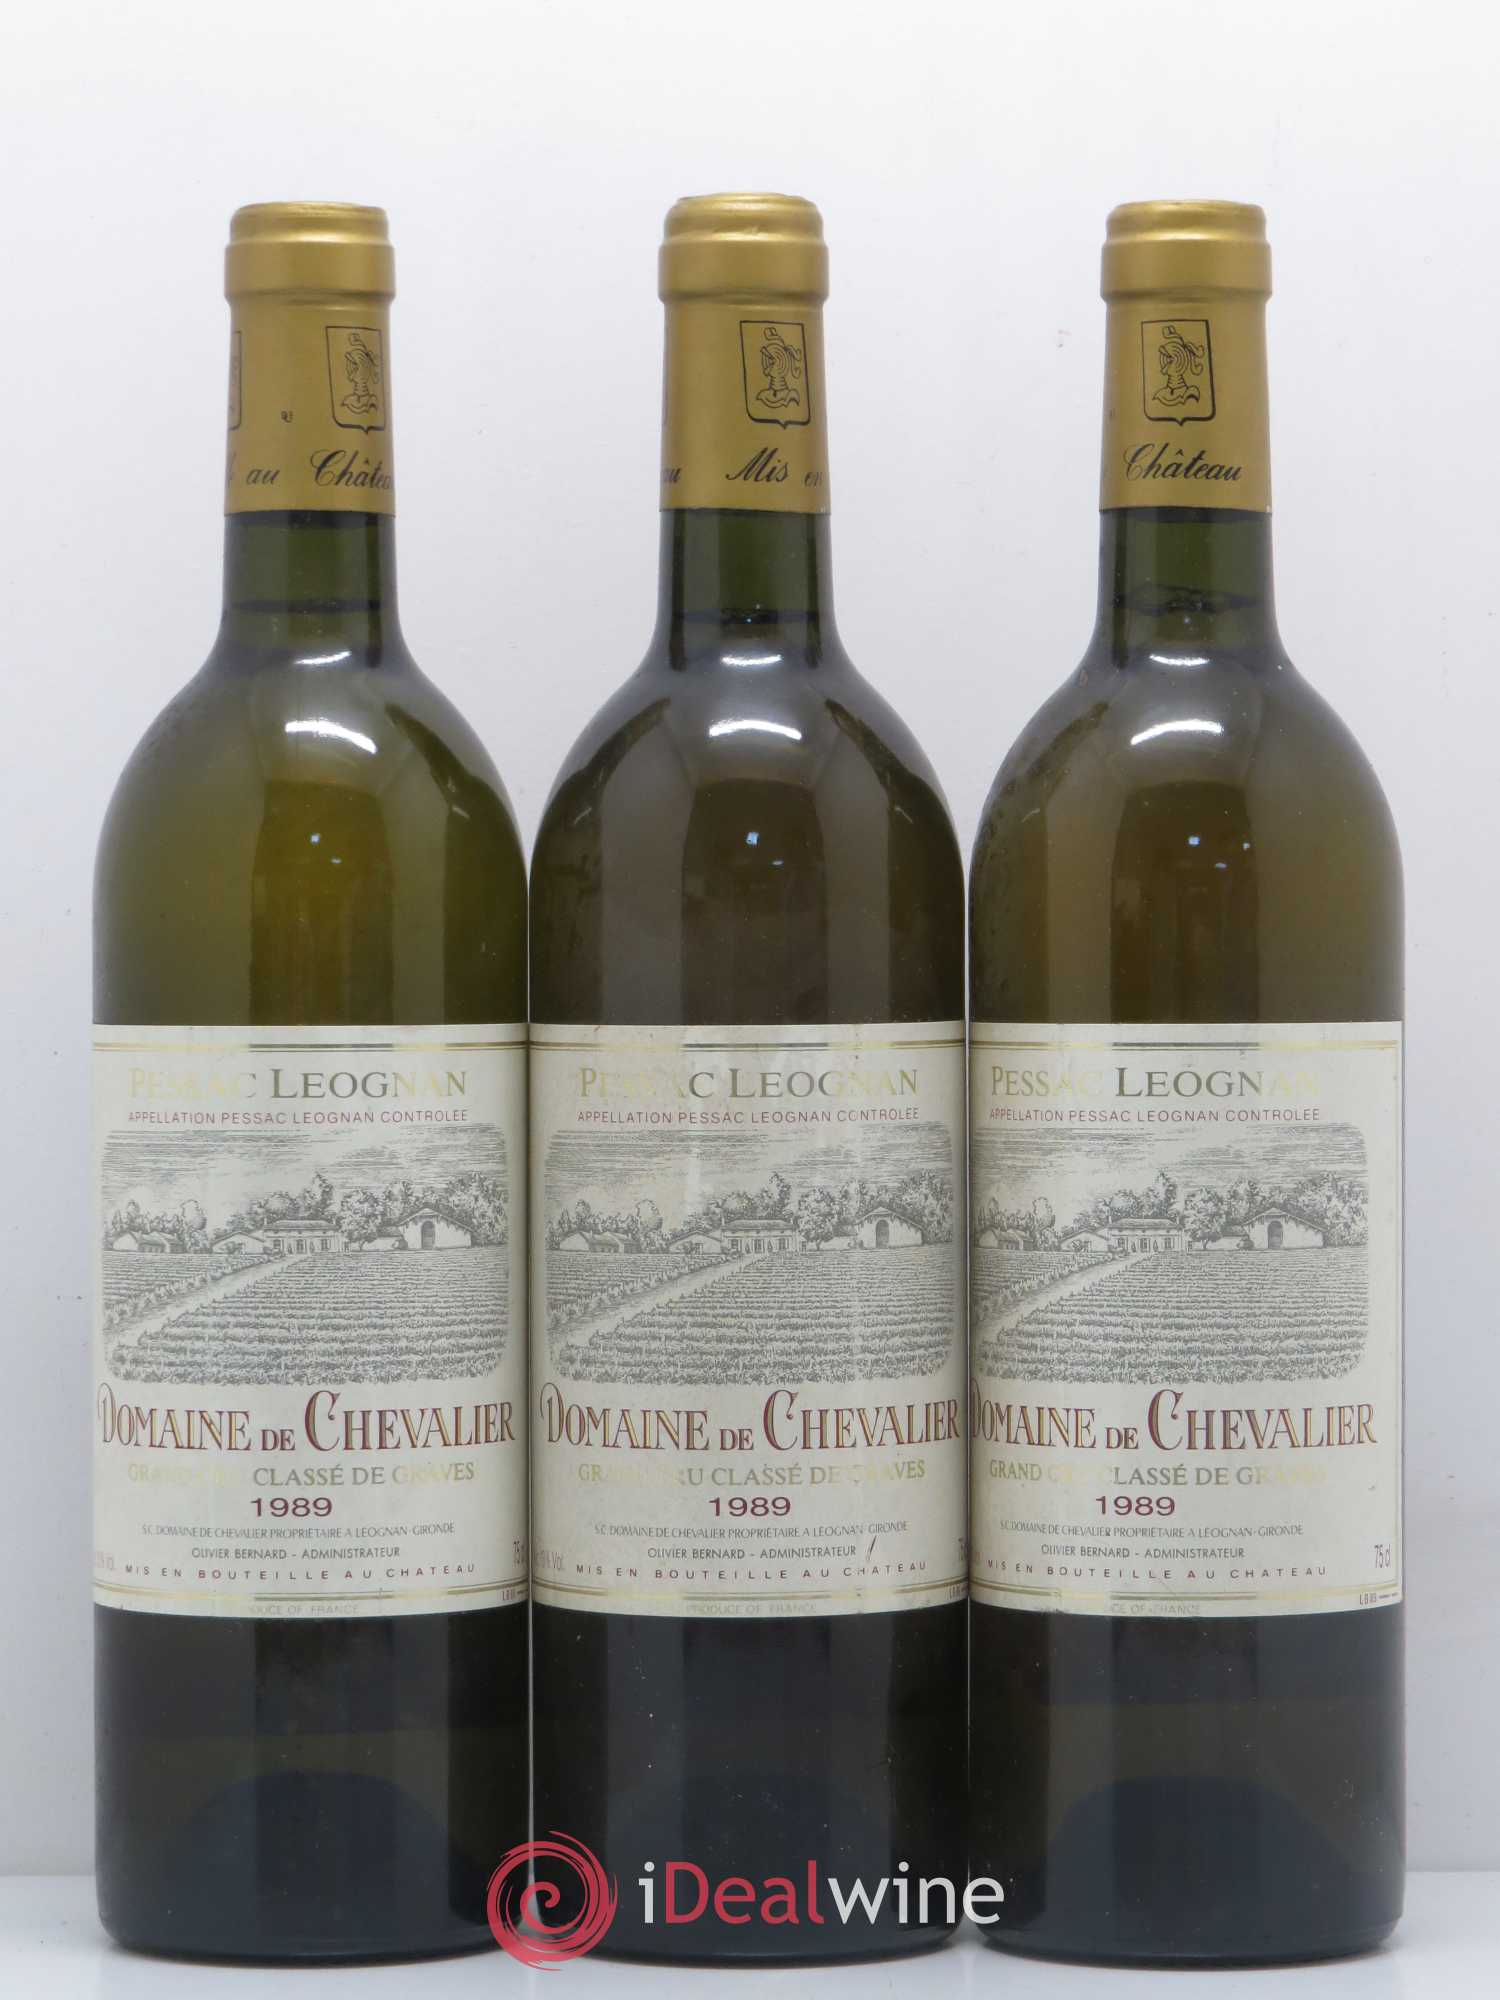 Domaine de Chevalier Cru Classé de Graves  1989 - Lot of 3 Bottles